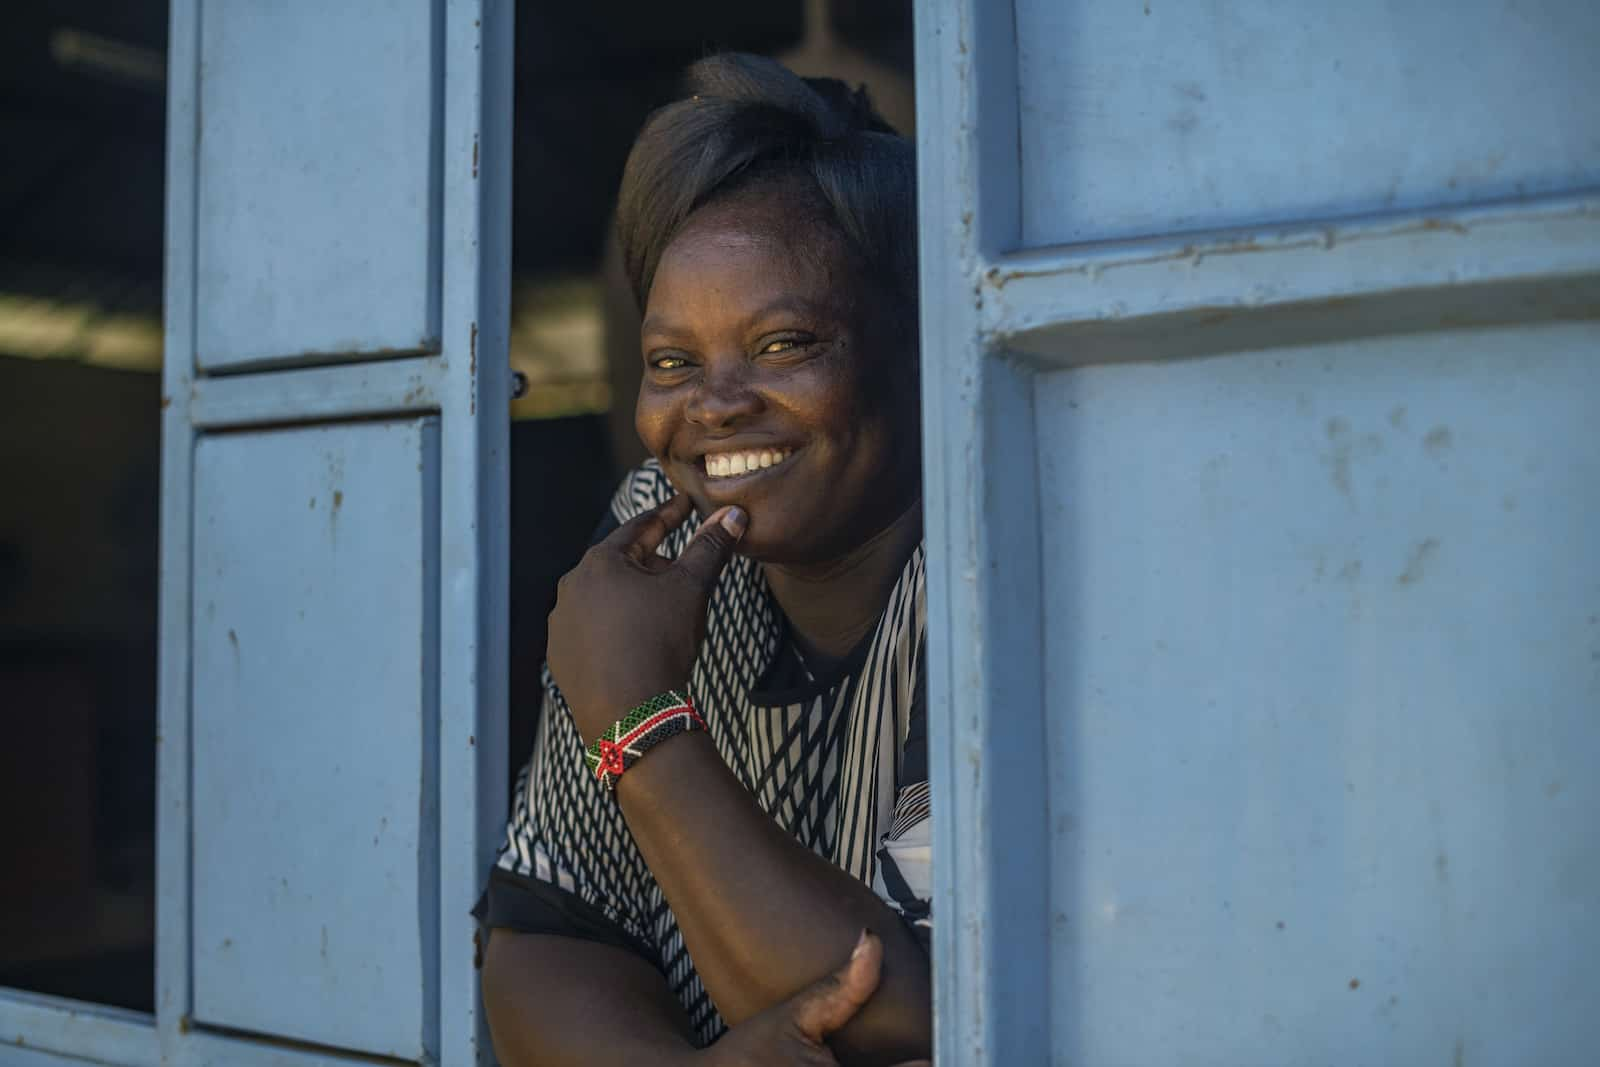 A woman who is a crusader against FGM leans out of a window with blue shutters.